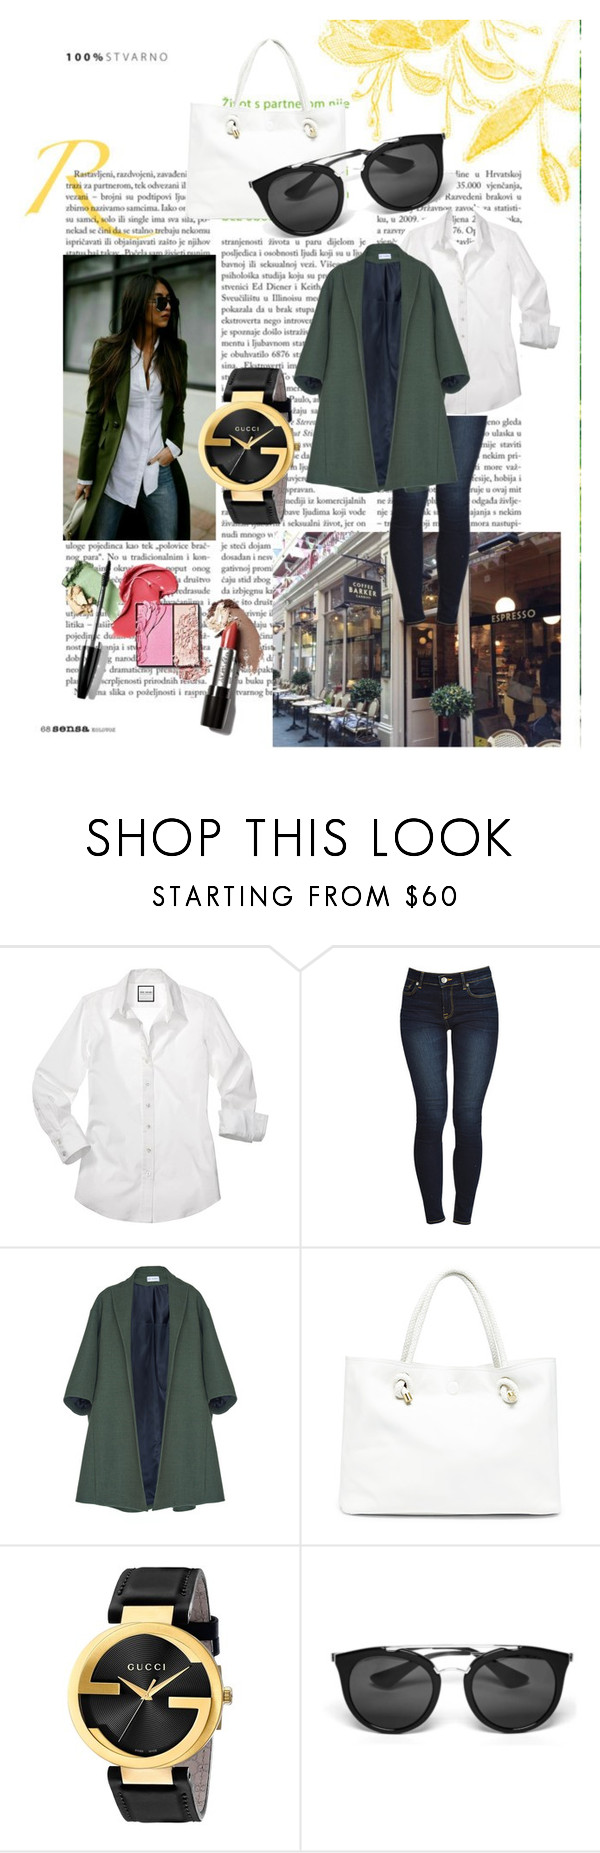 """""""Green coat"""" by helena-cy ❤ liked on Polyvore featuring Barker, MSGM, Sole Society, Gucci and Prada"""